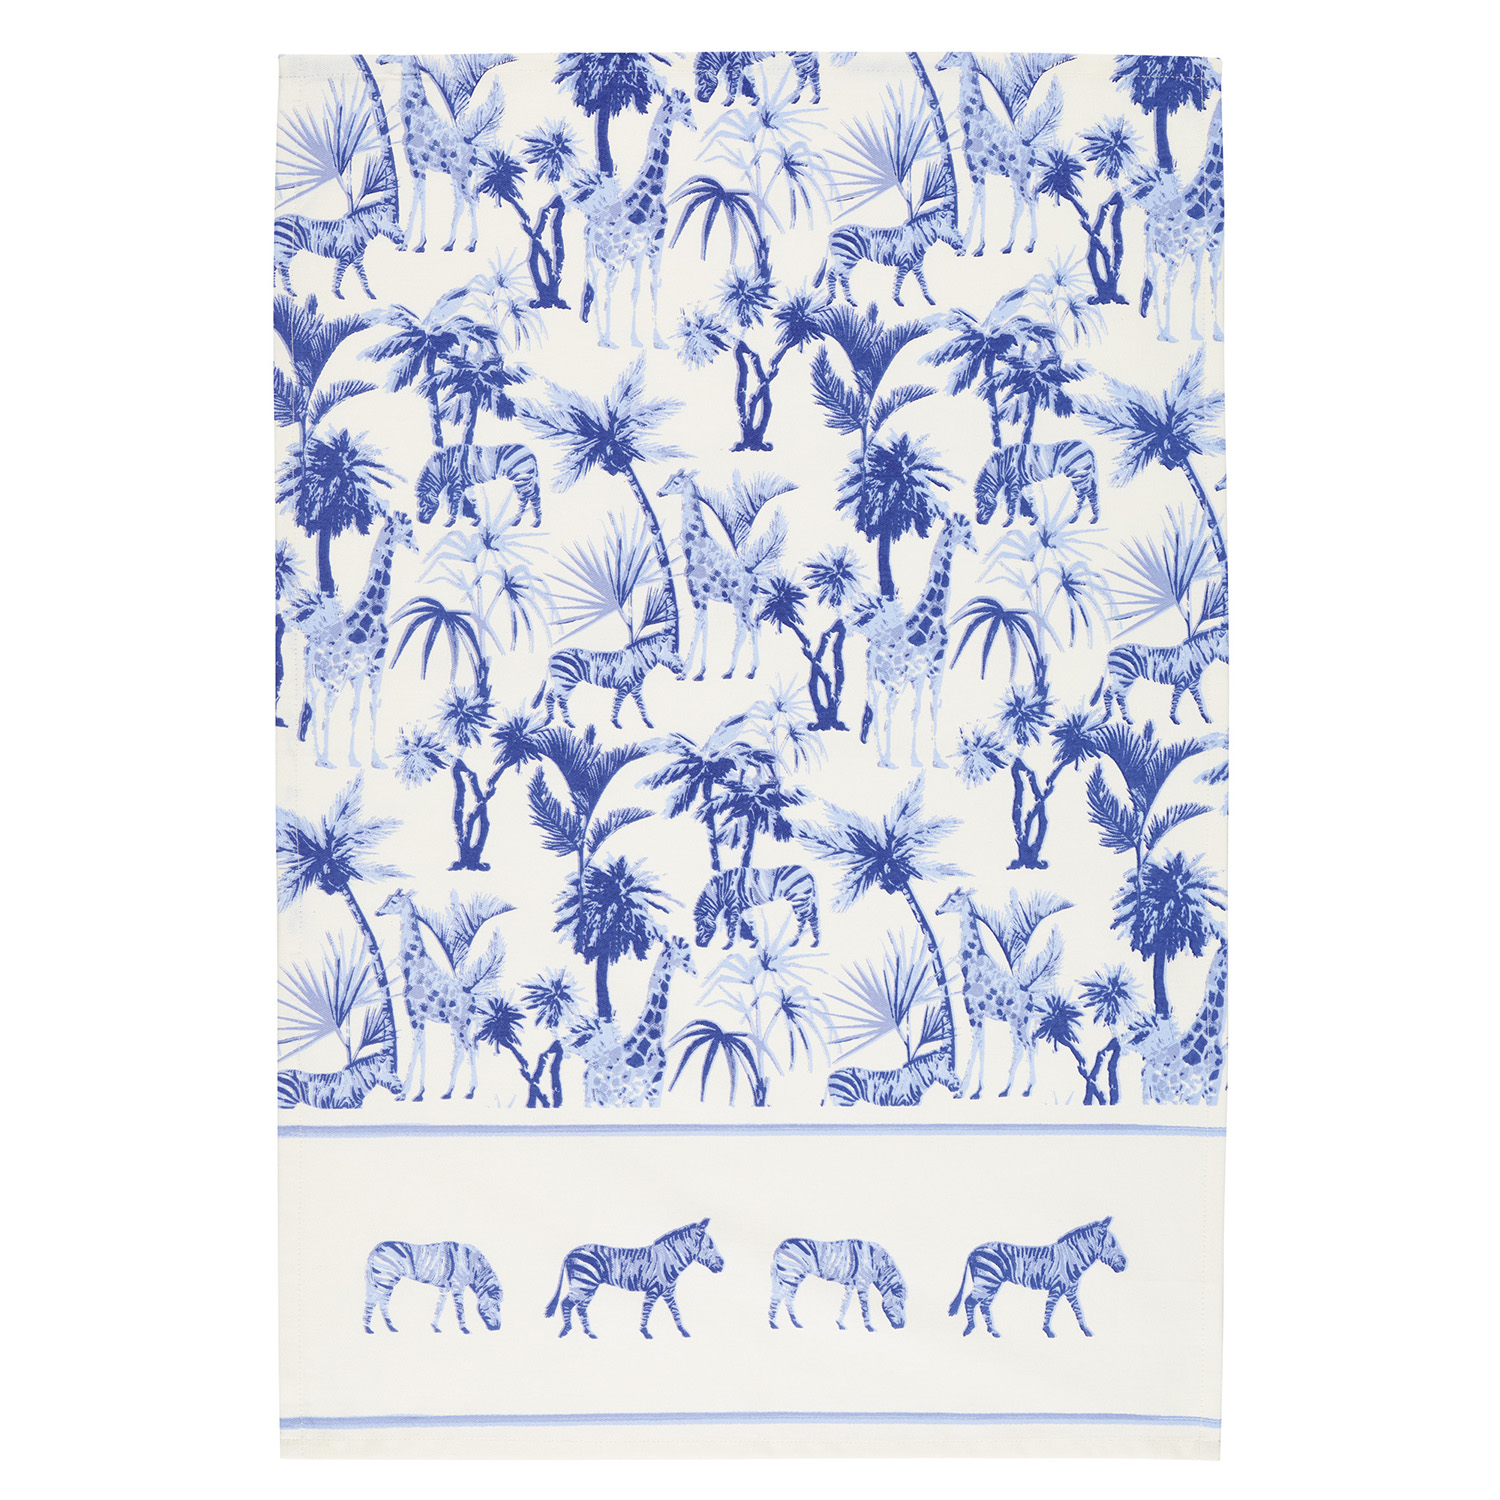 2 Pack Safari Tea Towels, Blue/White